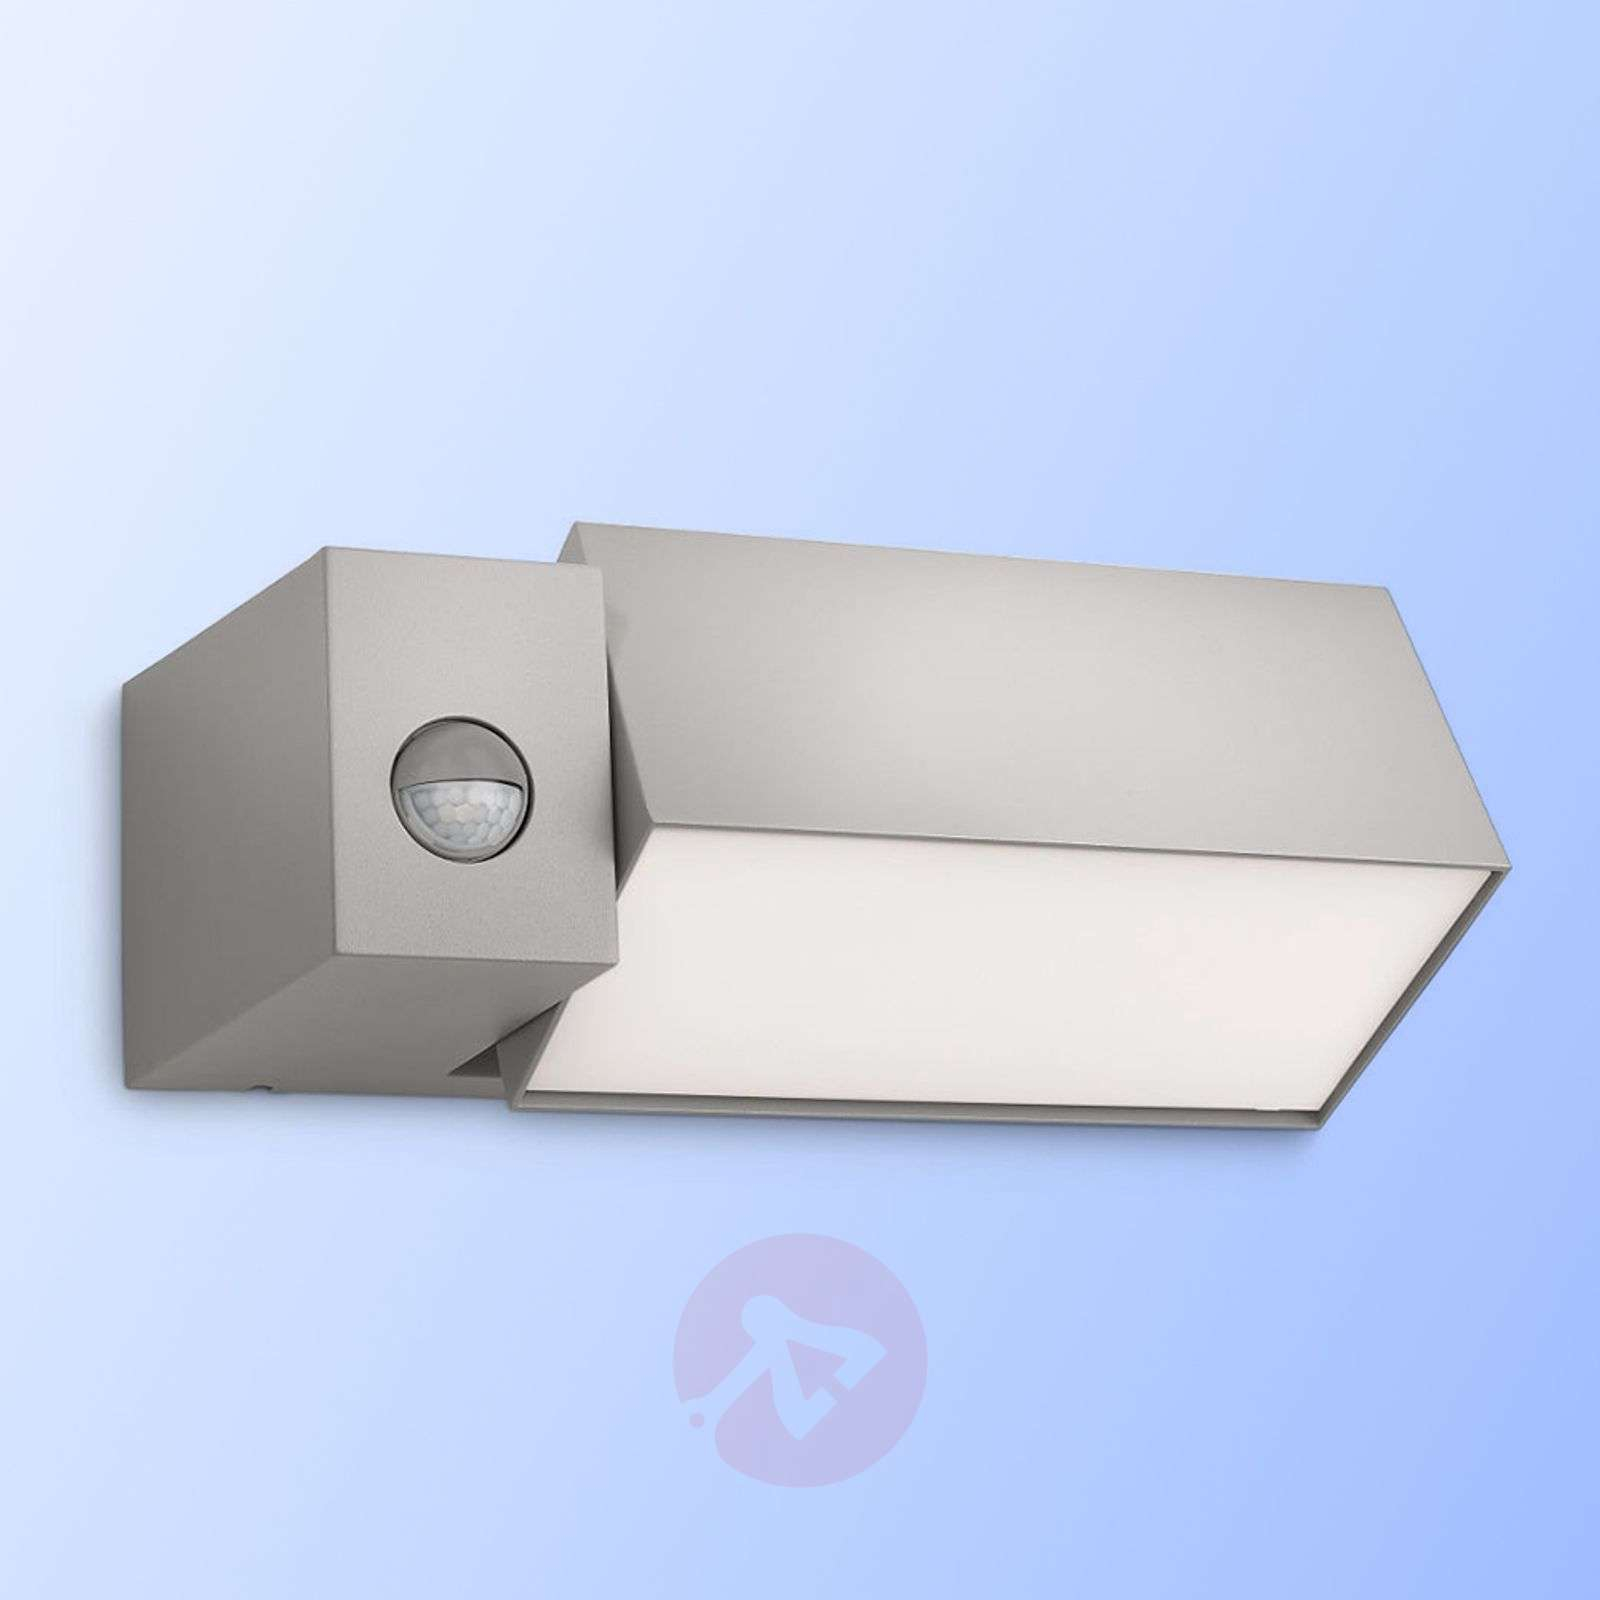 Border Wall Light with Motion Detector Grey-7531573-02